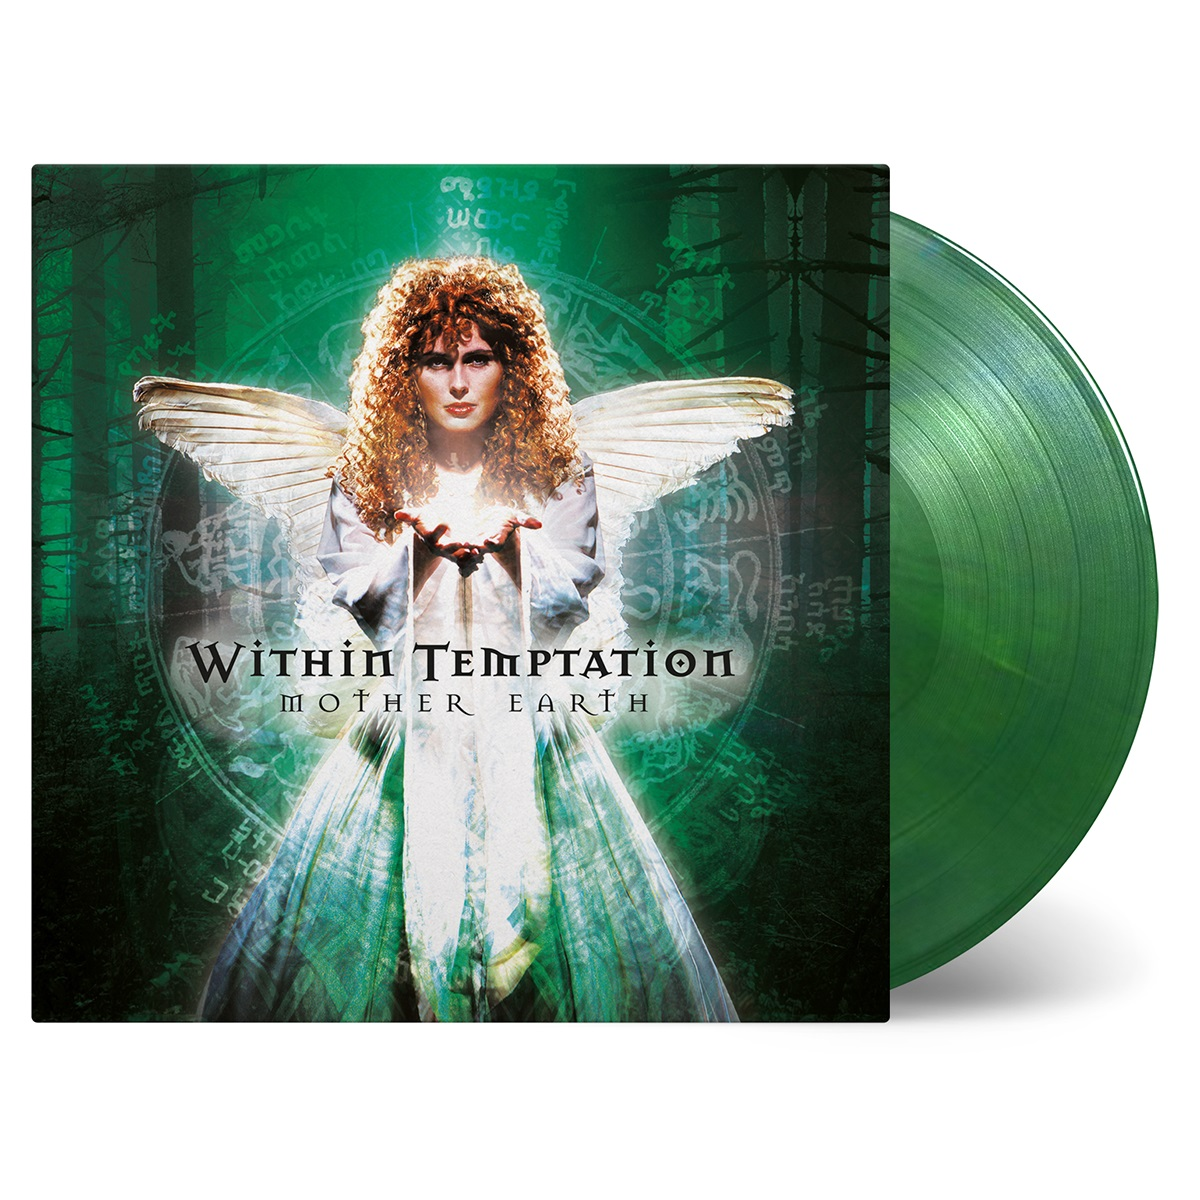 Mother Earth – LTD Edition Numbered Green Vinyl - Within Temptation